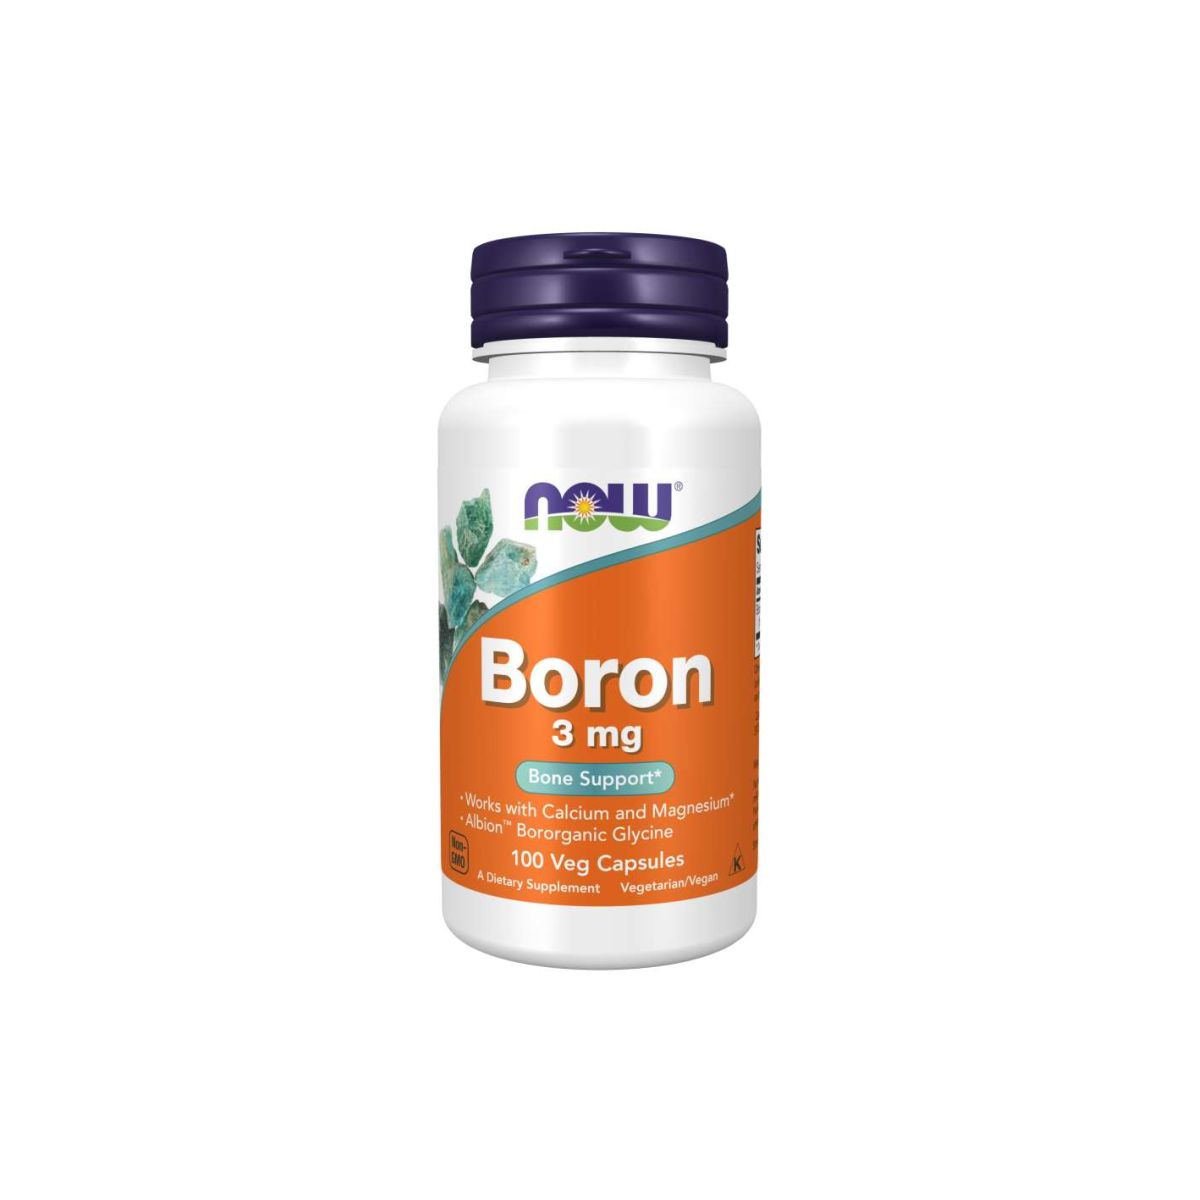 Boron 3mg Bone Support 100 Caps - Now Foods